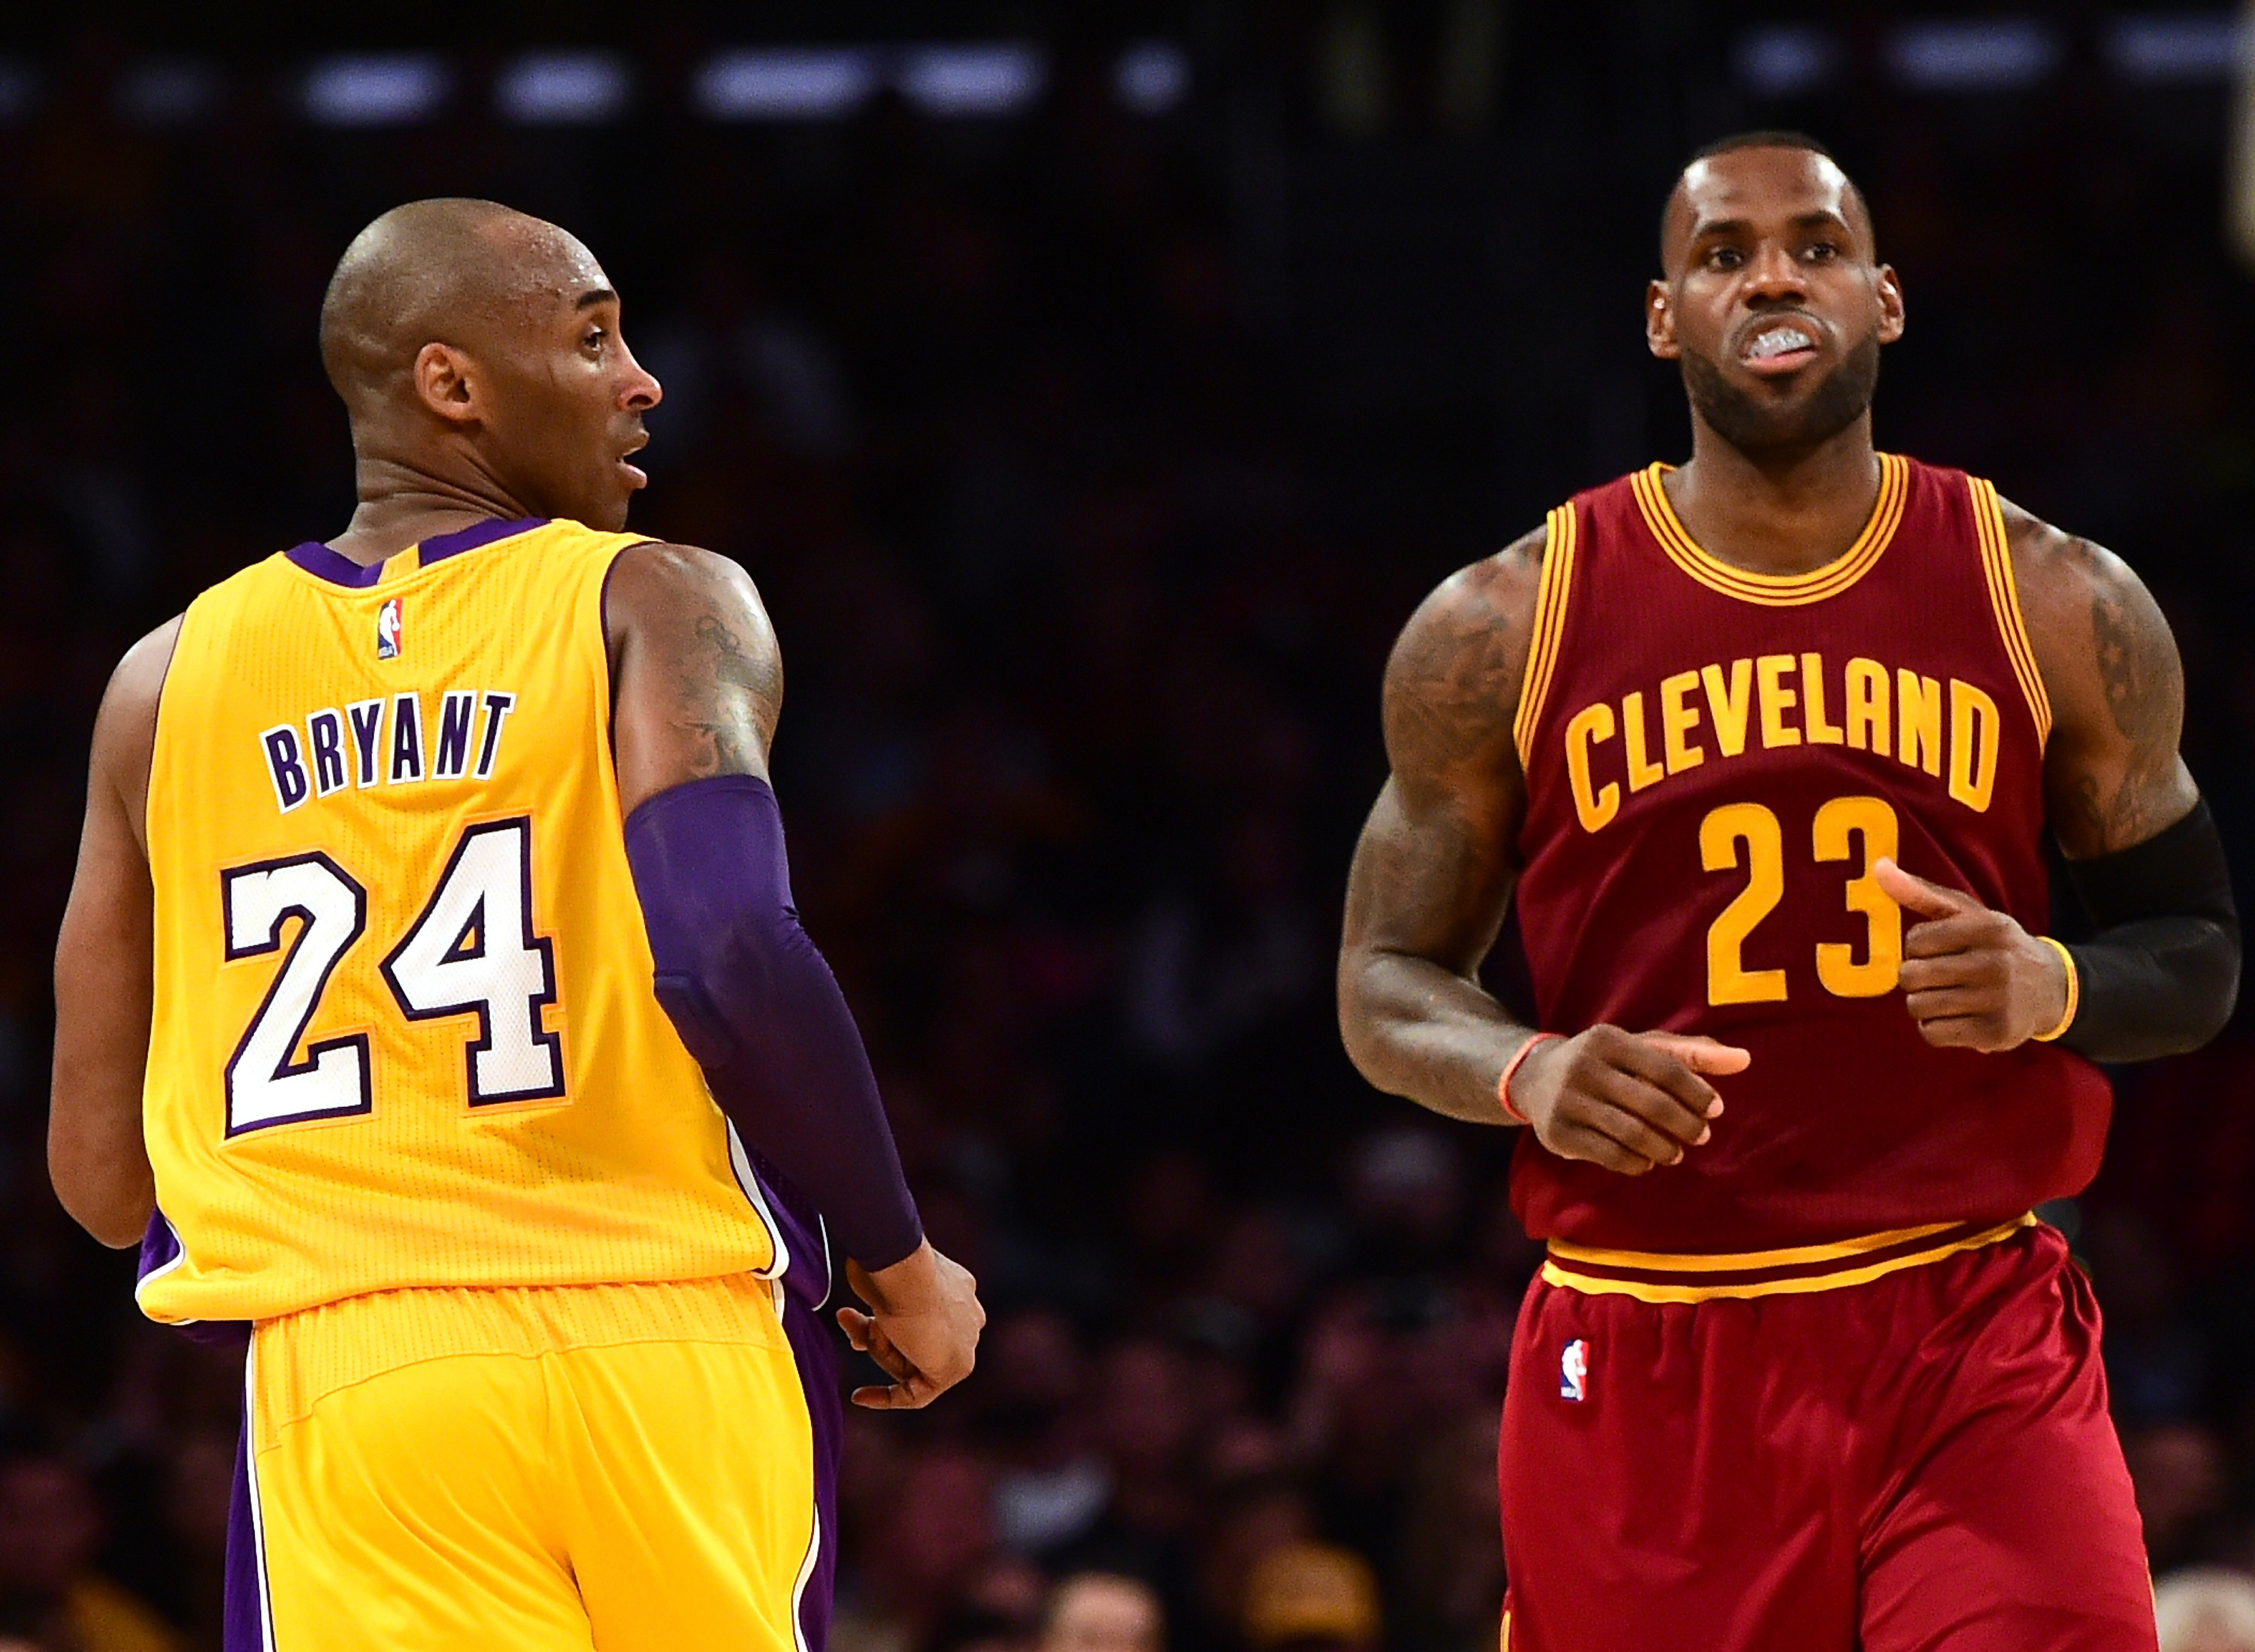 Kobe Bryant, Lebron James, Los Lakers, Los Angeles